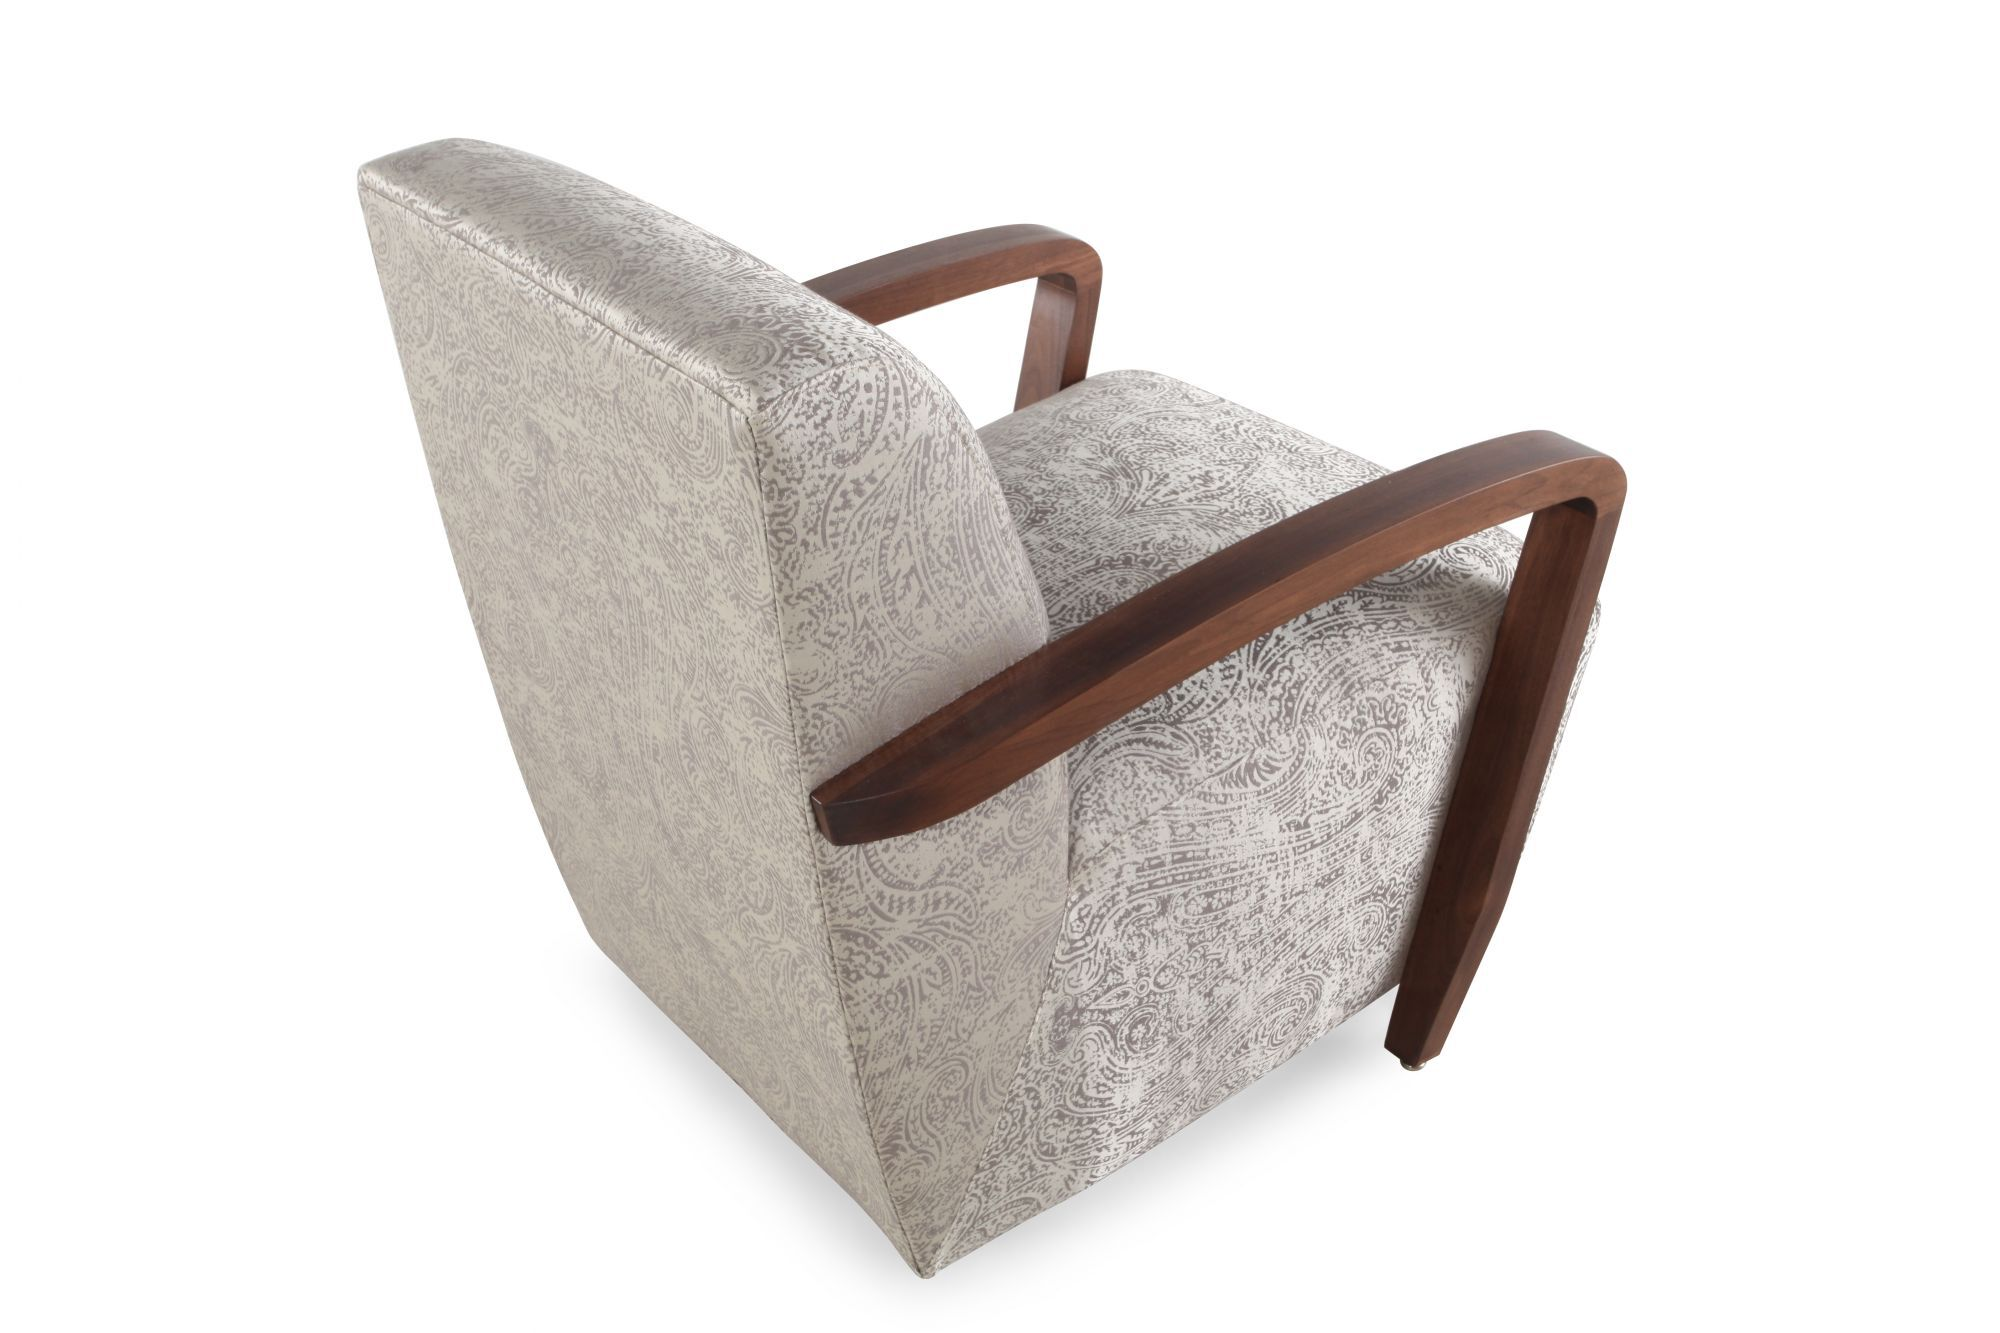 silver accent chair folding under $10 paisley patterned contemporary 22 quot in